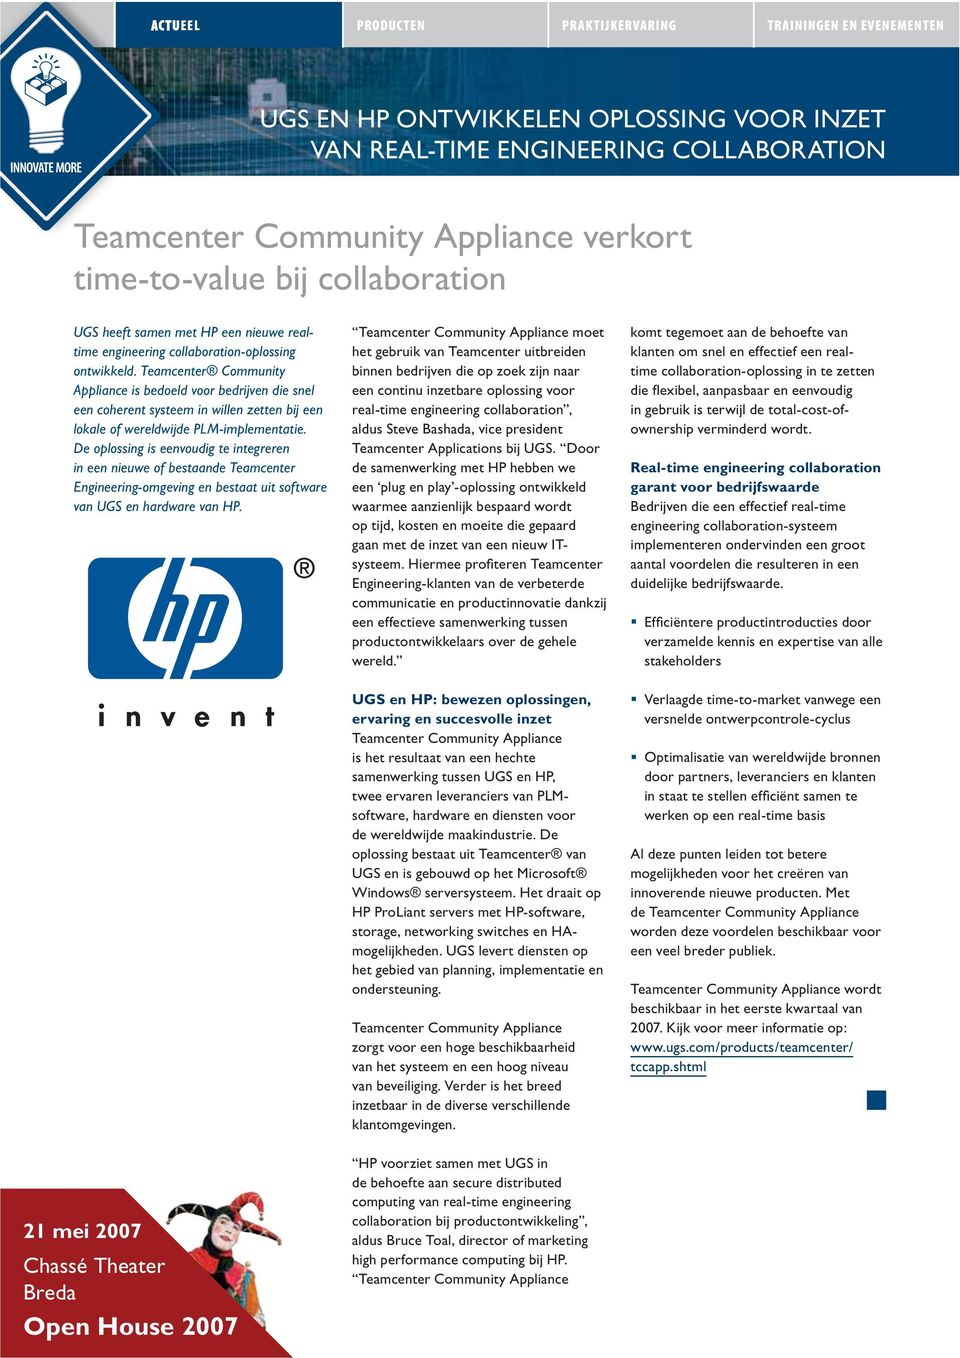 De oplossing is eenvodig te integreren in een niewe of bestaande Teamcenter Engineering-omgeving en bestaat it software van UGS en hardware van HP.